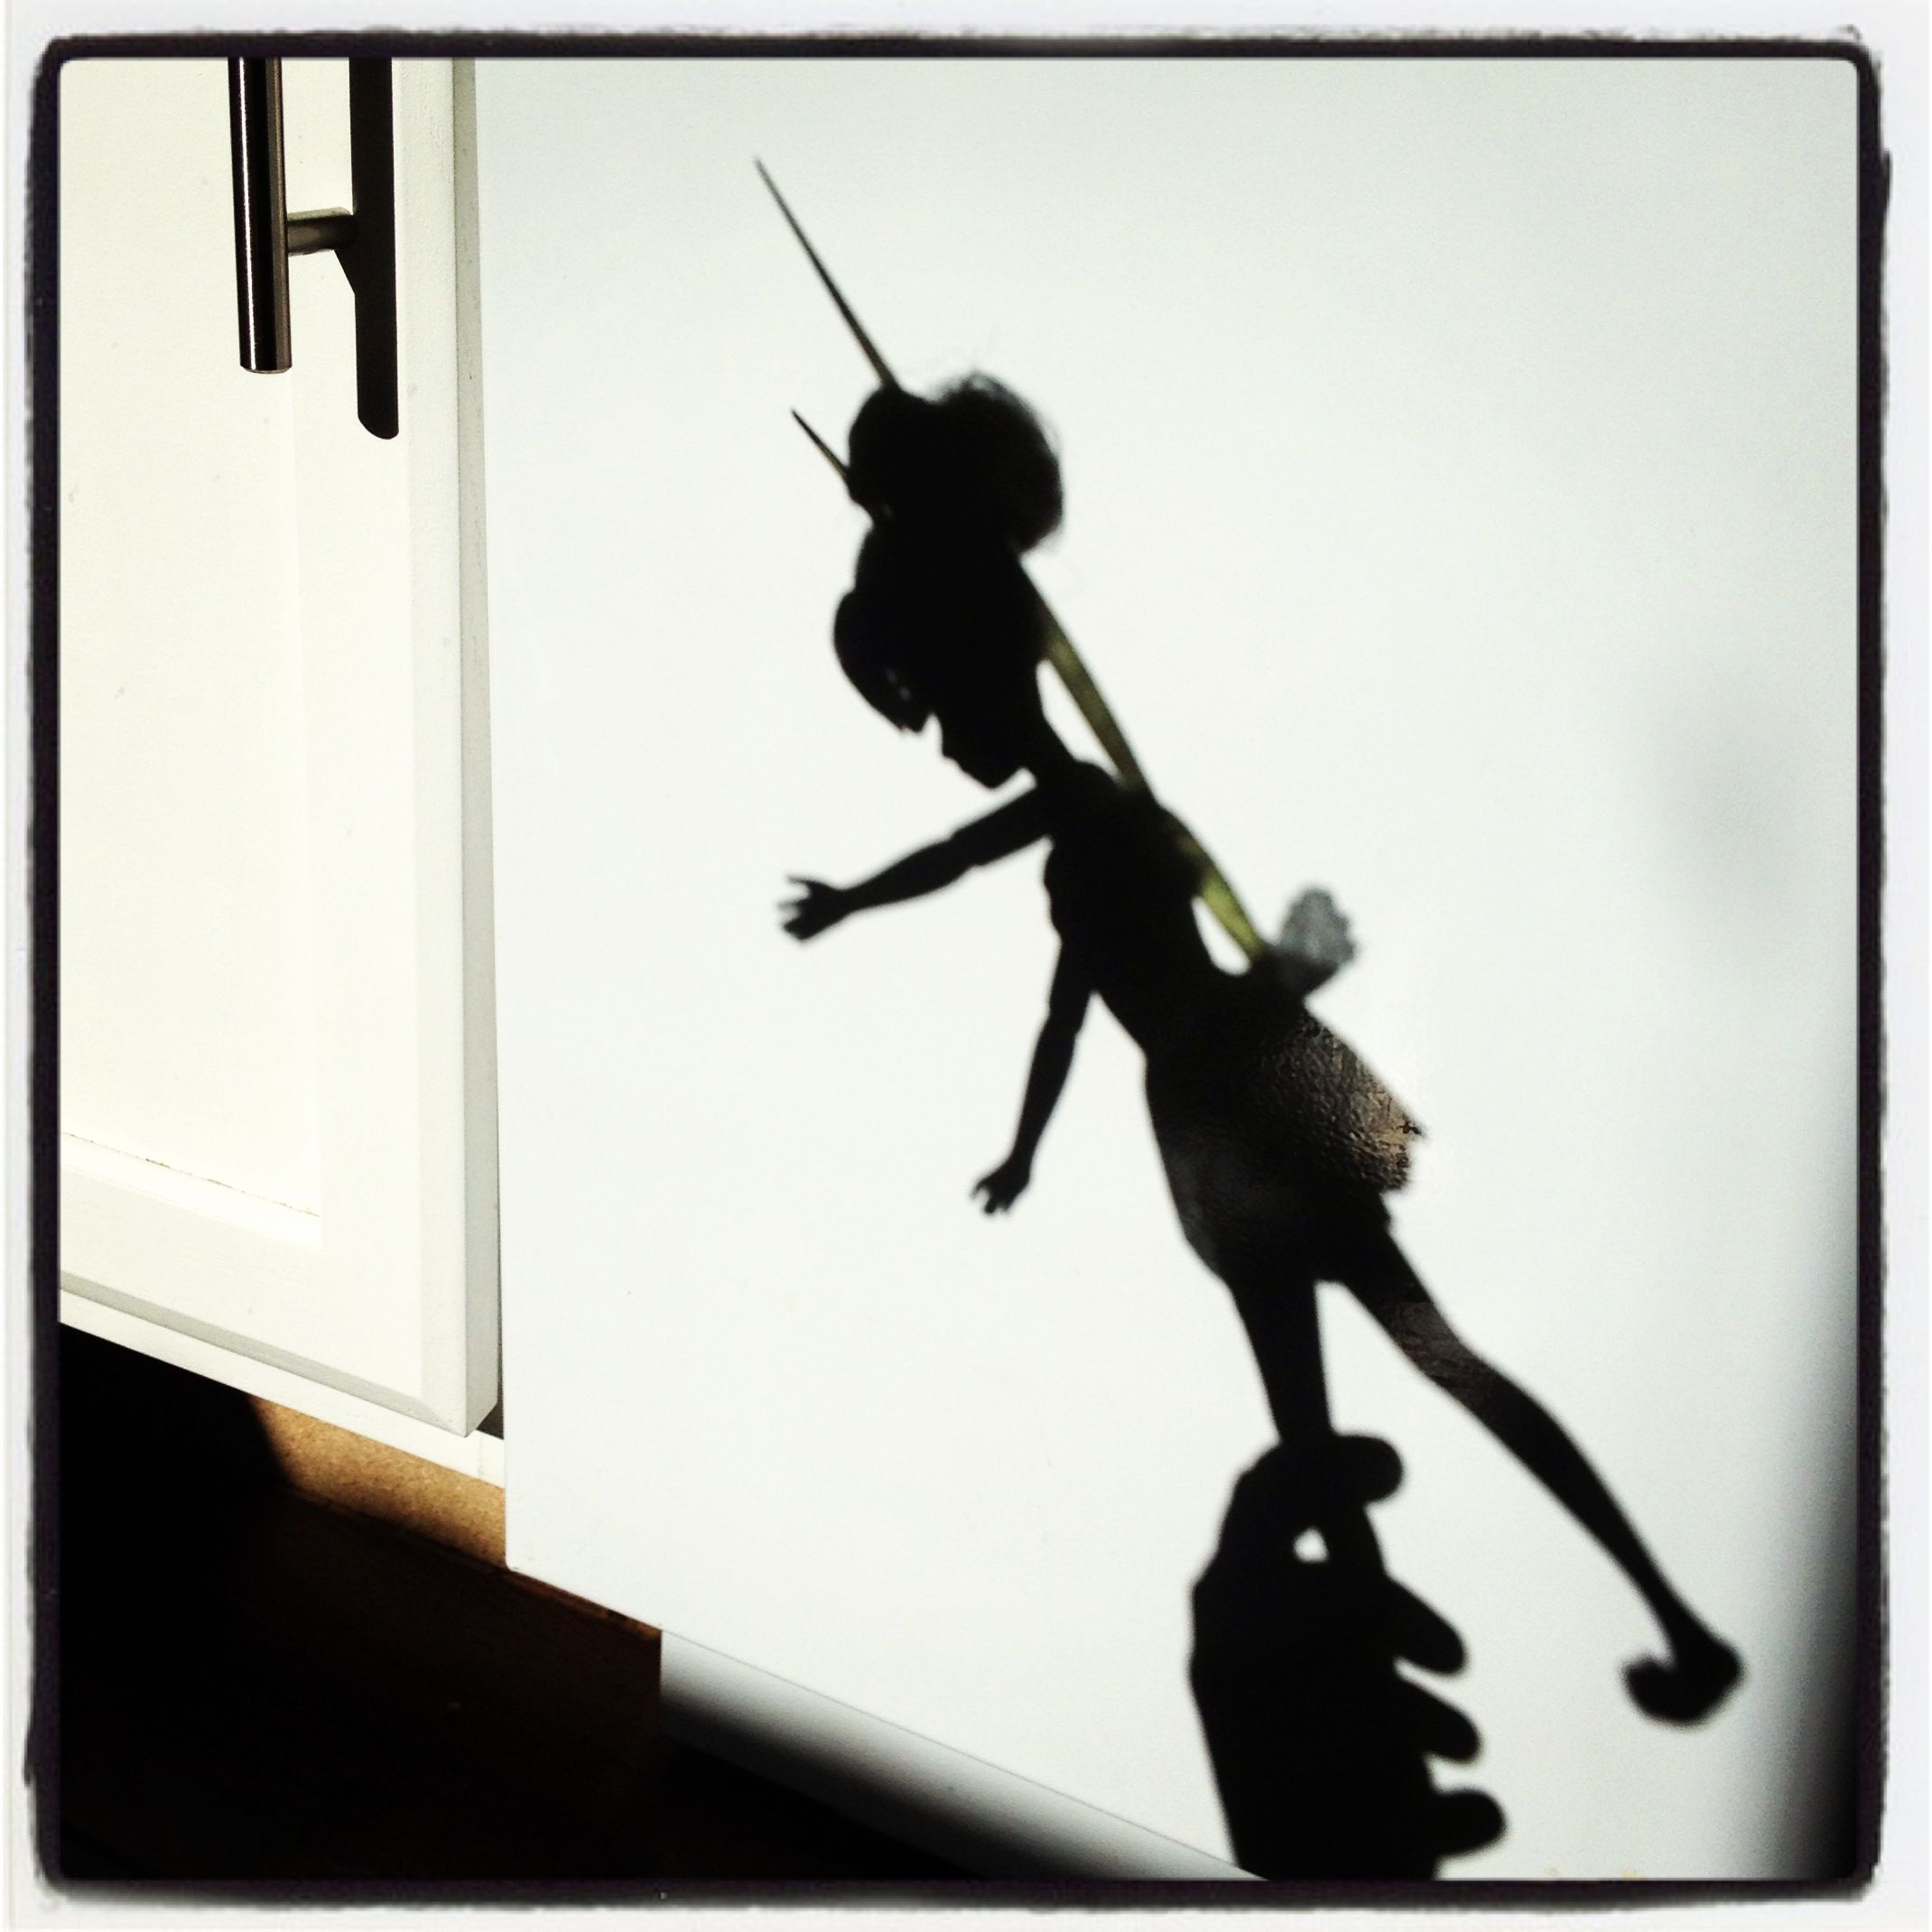 tinker bell iphone4s photography iphoneography